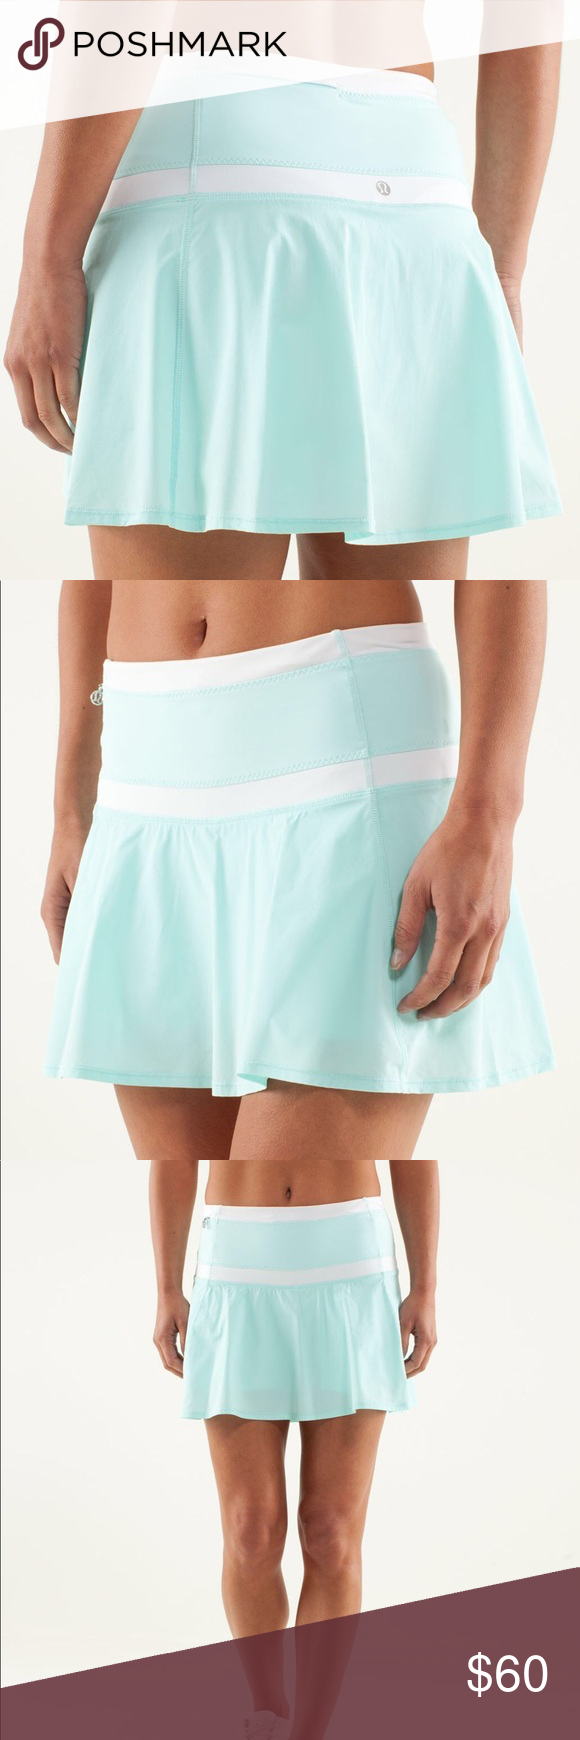 9880e3b2cf EUC Lululemon Hot Hitter Skirt in Aquamarine/White This skirt is in  excellent like new condition! There are now flaws. It has built in  compression shorts.